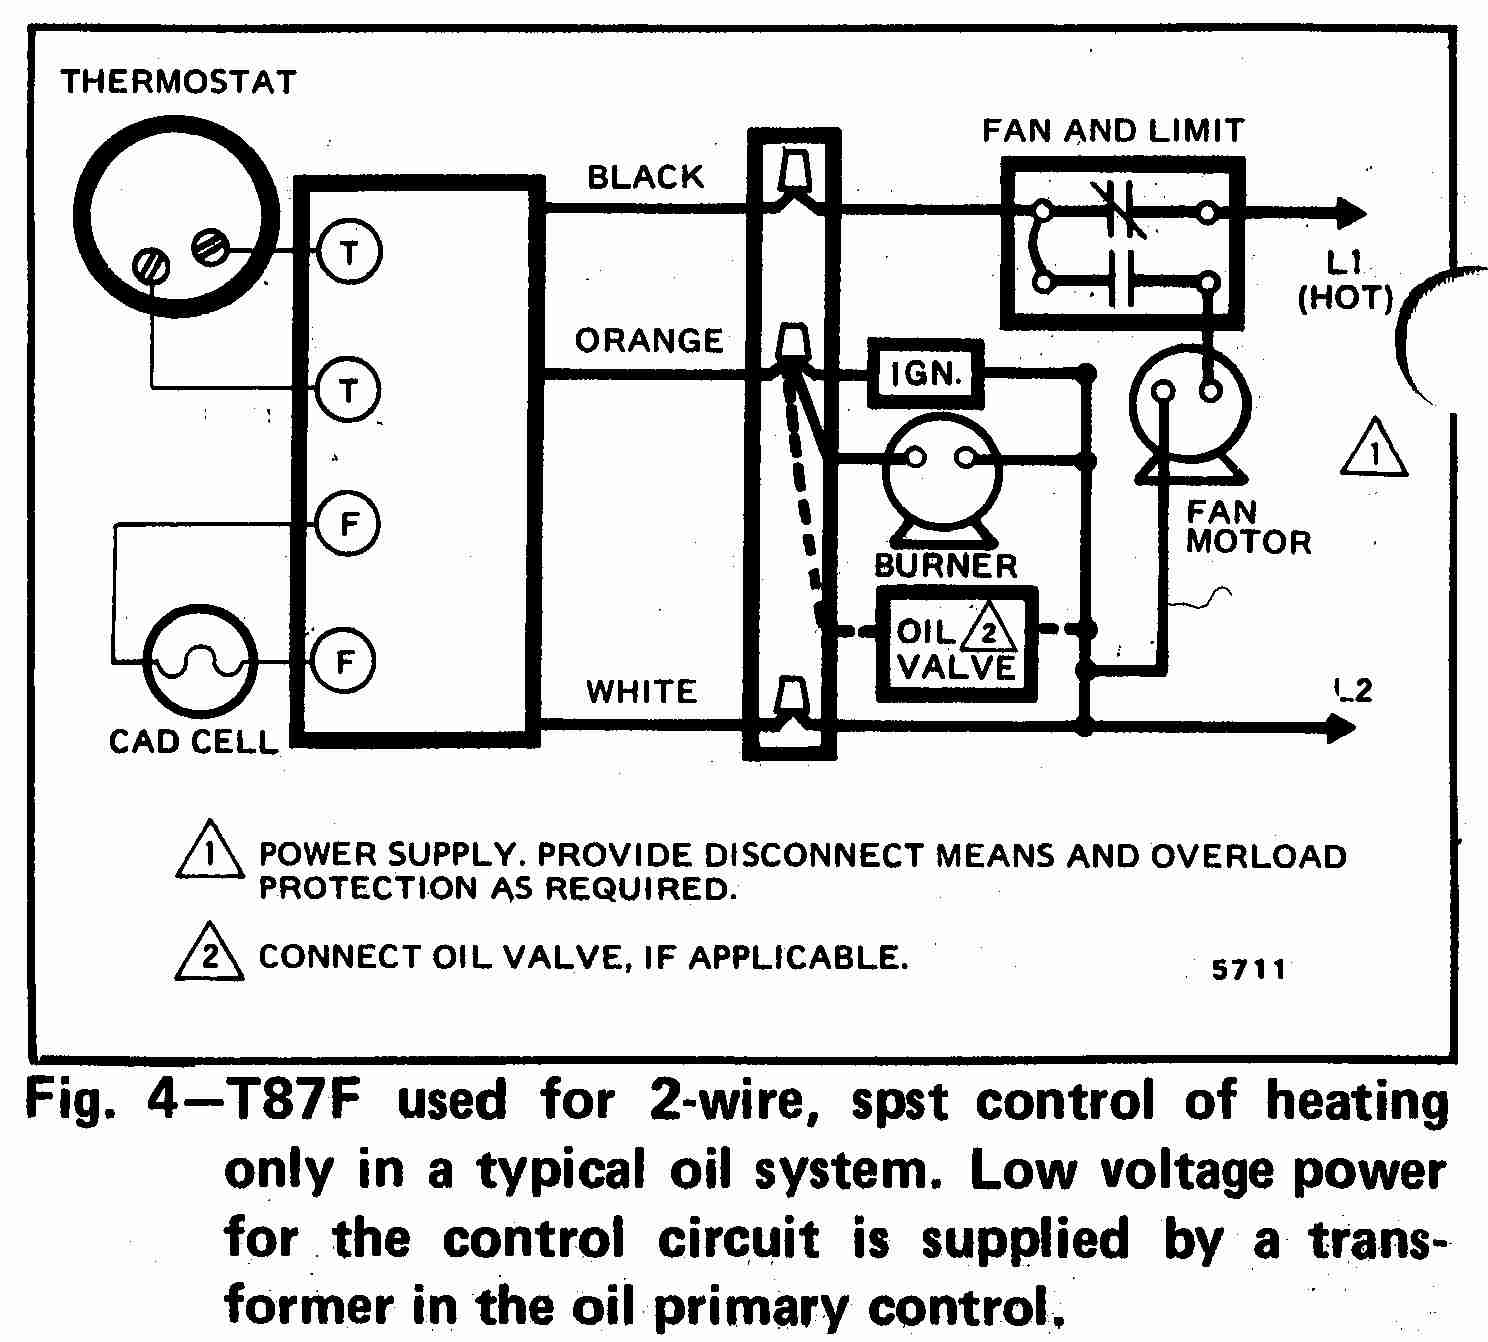 Thermostatic Switch Wiring Diagram Not Lossing Combination Single Pole 3 Way Room Thermostat Diagrams For Hvac Systems Rh Inspectapedia Com